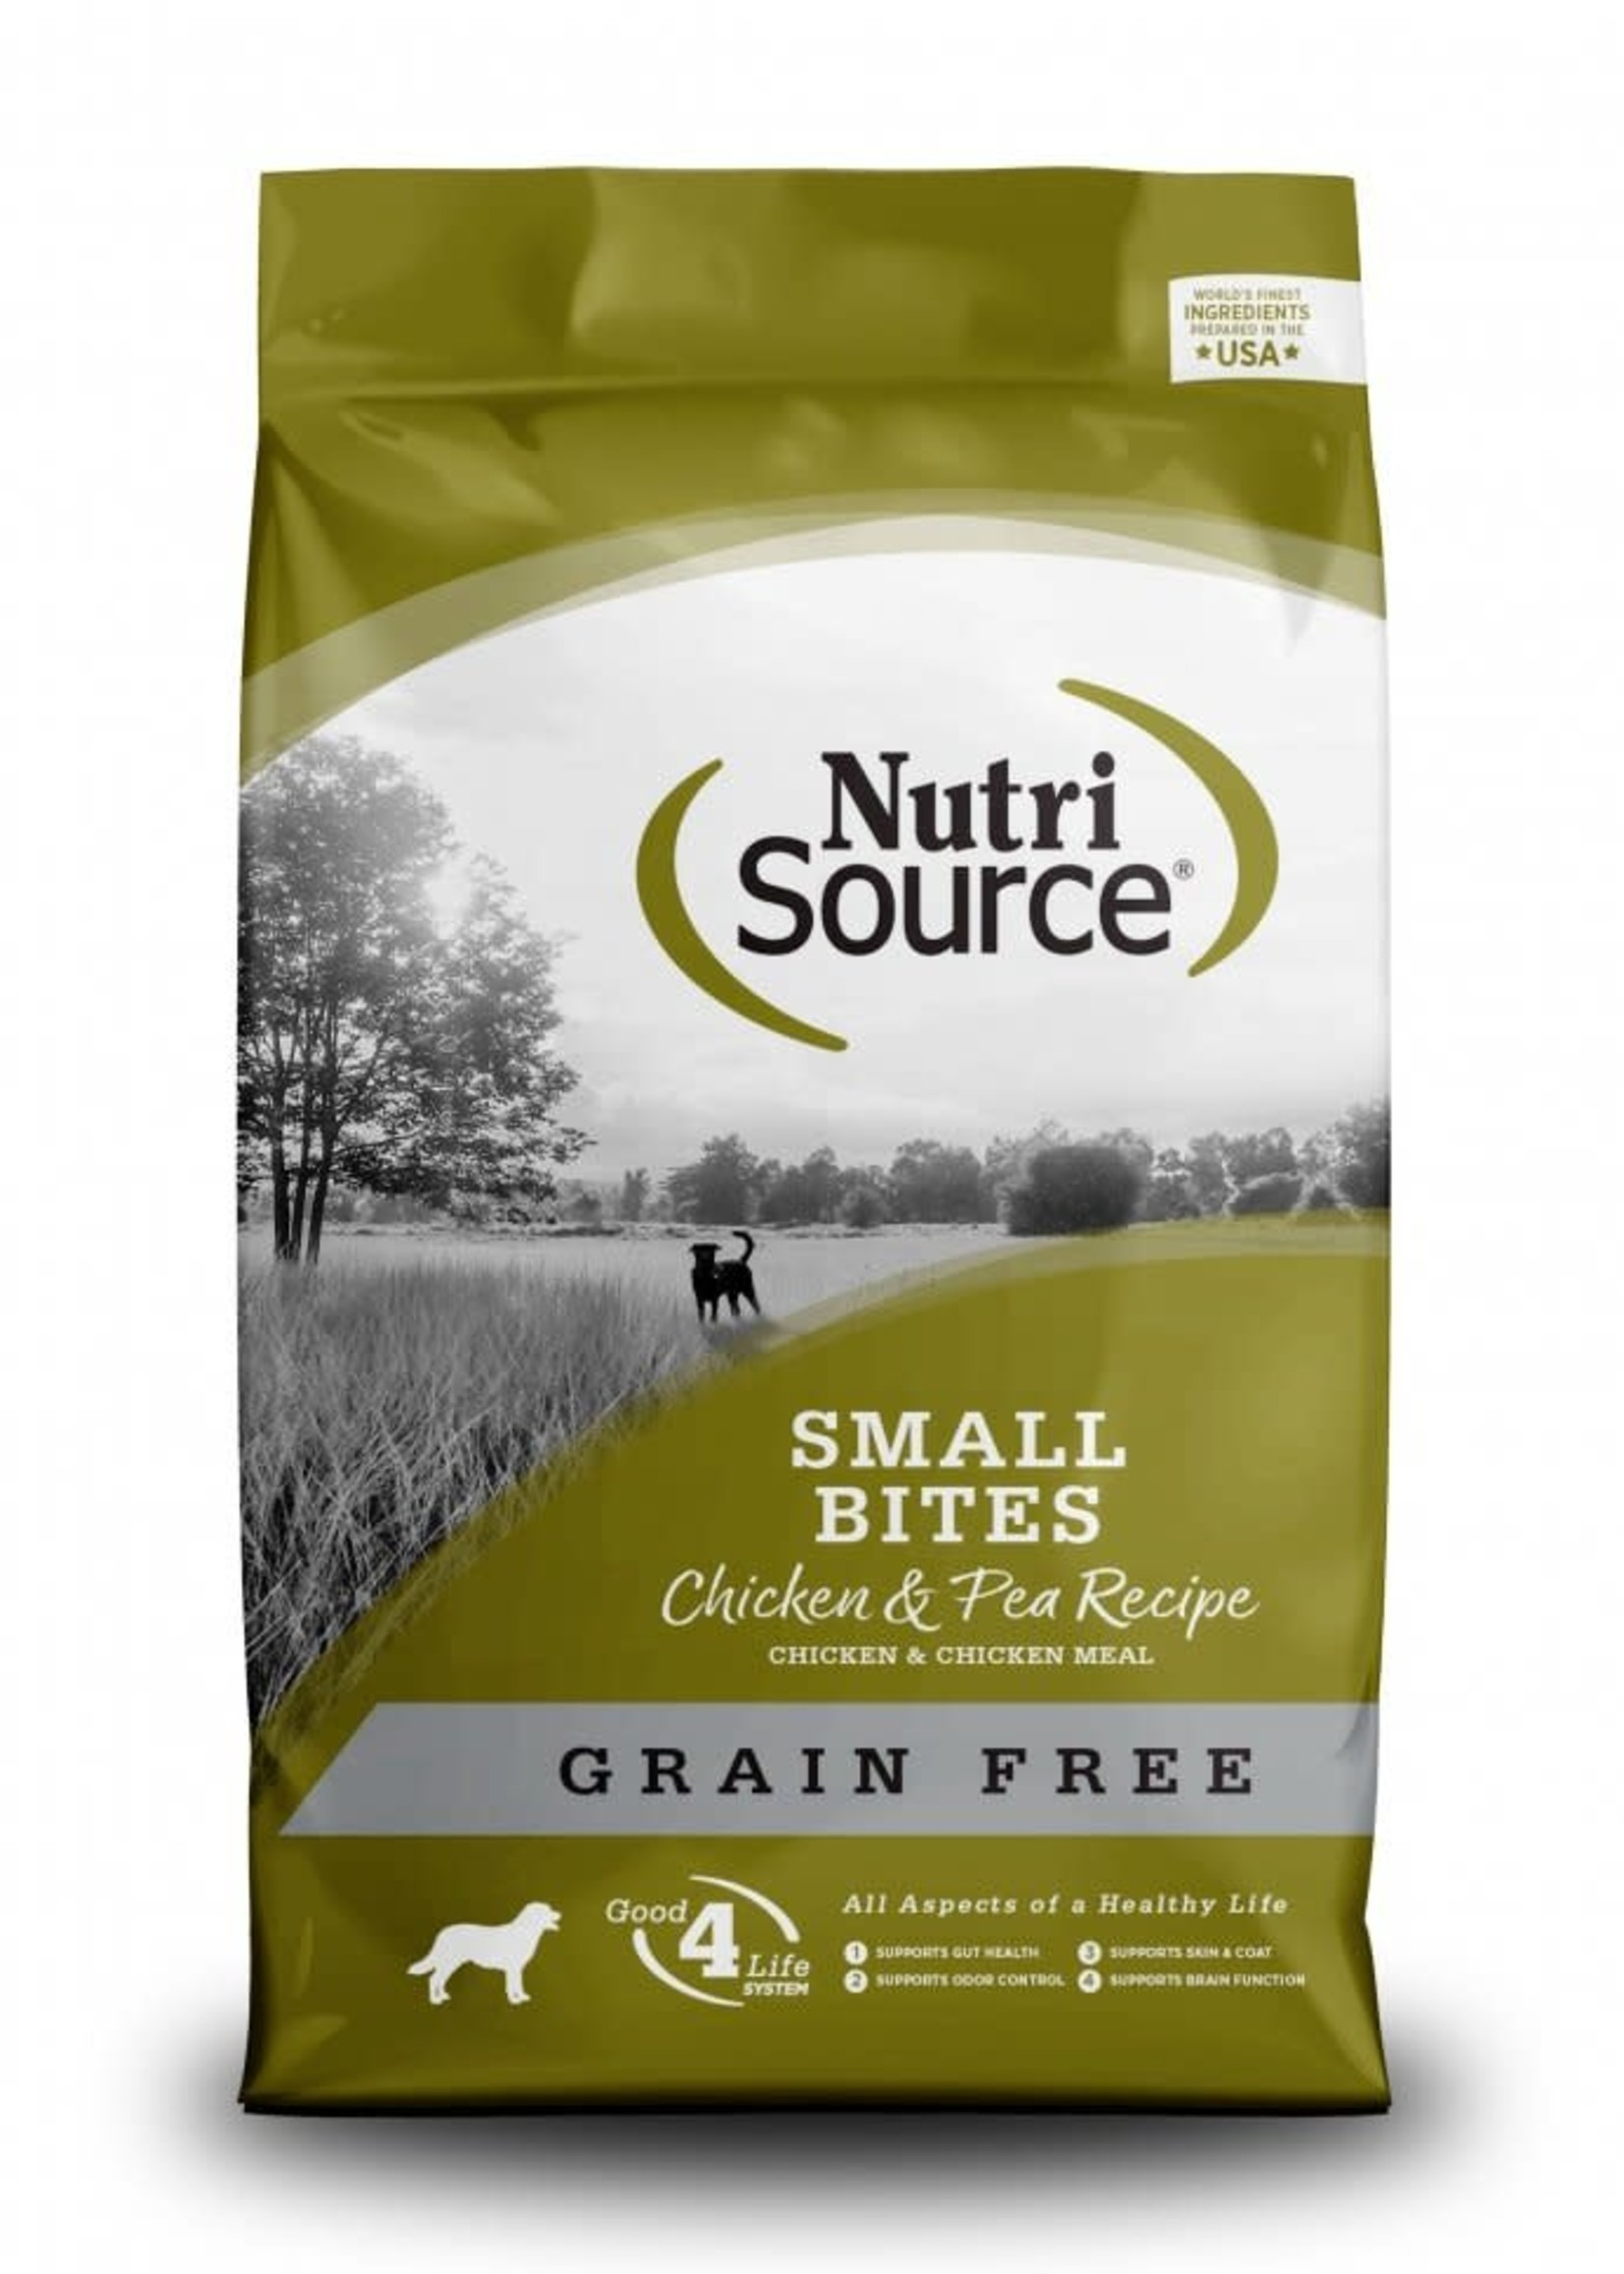 Nutrisource Nutrisource Grain-Free Chicken & Pea Small Bites Dry Dog Food 5lbs